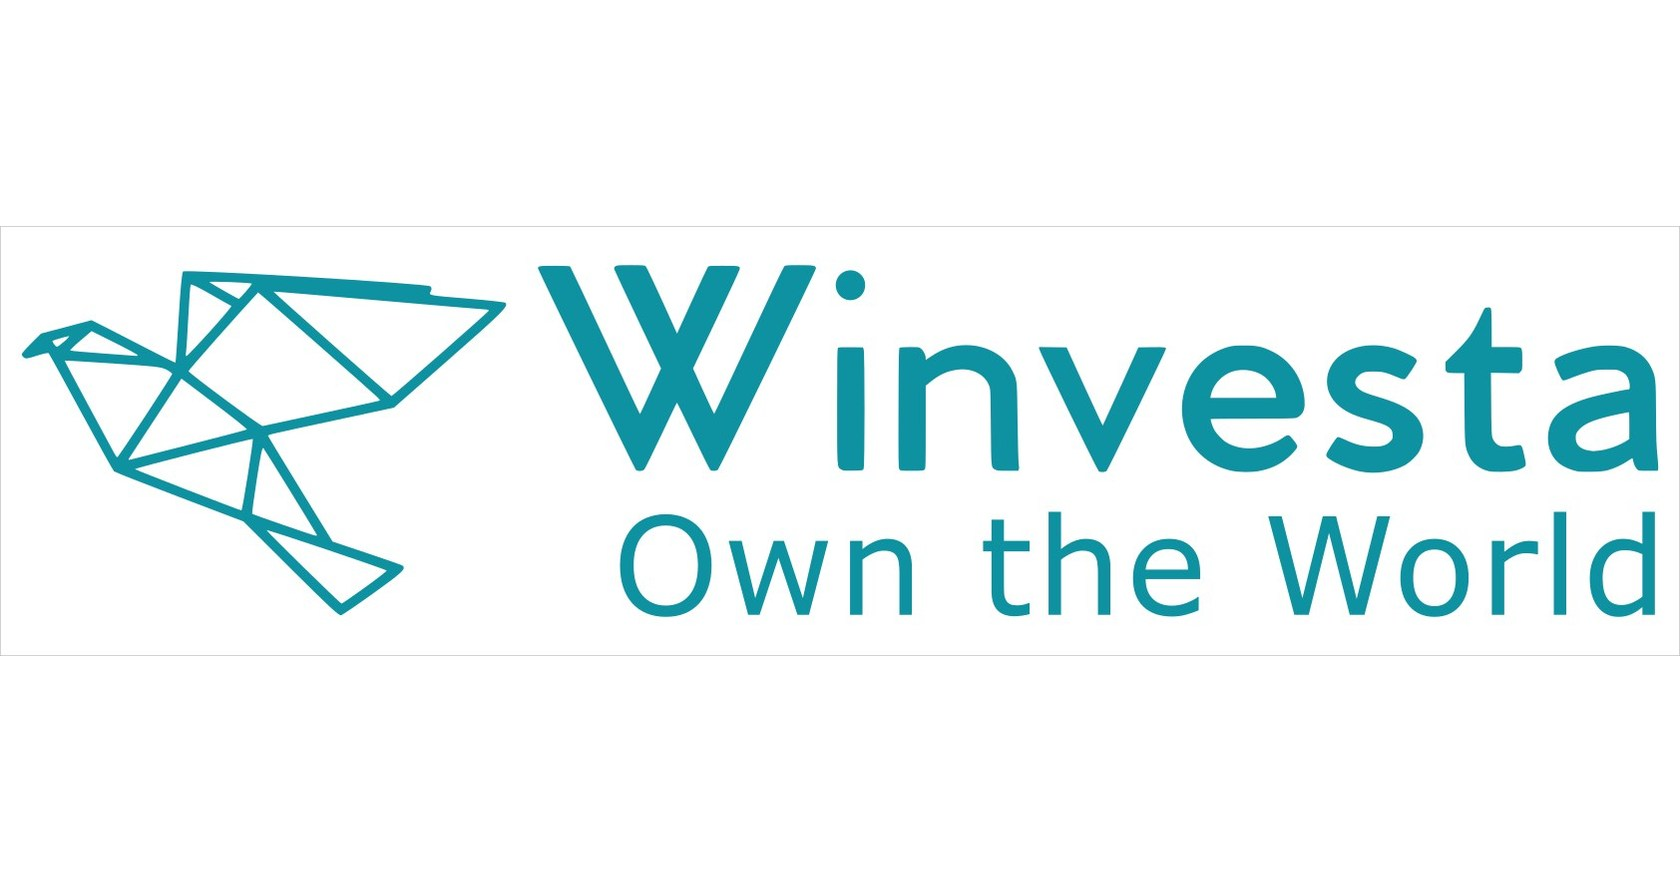 Indian Winvesta Named FinTech Company of the Year 2020 for Asia Pacific by Barclays Entrepreneur